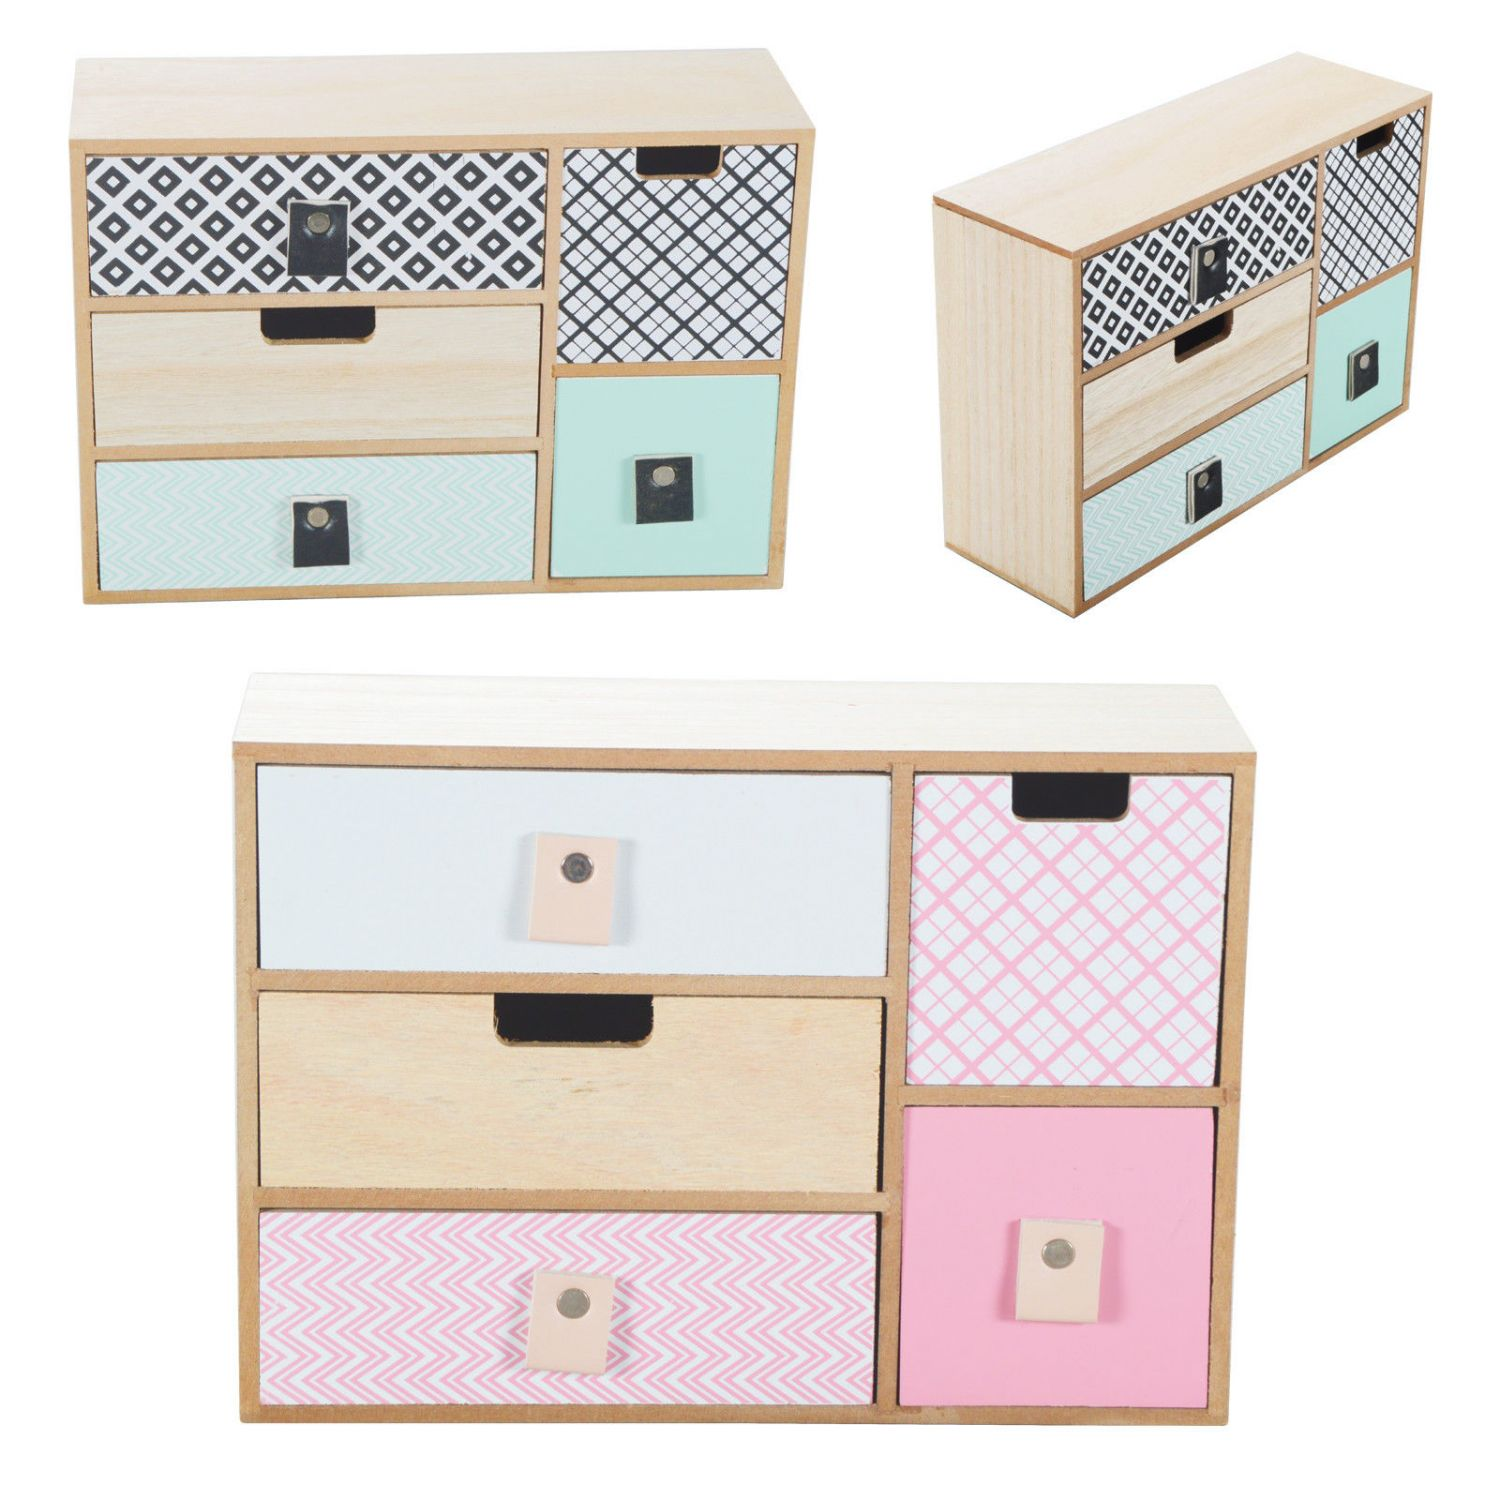 mini kommode kommode schr nkchen holz shabby chic 5 schubladen schrank bunt ebay. Black Bedroom Furniture Sets. Home Design Ideas